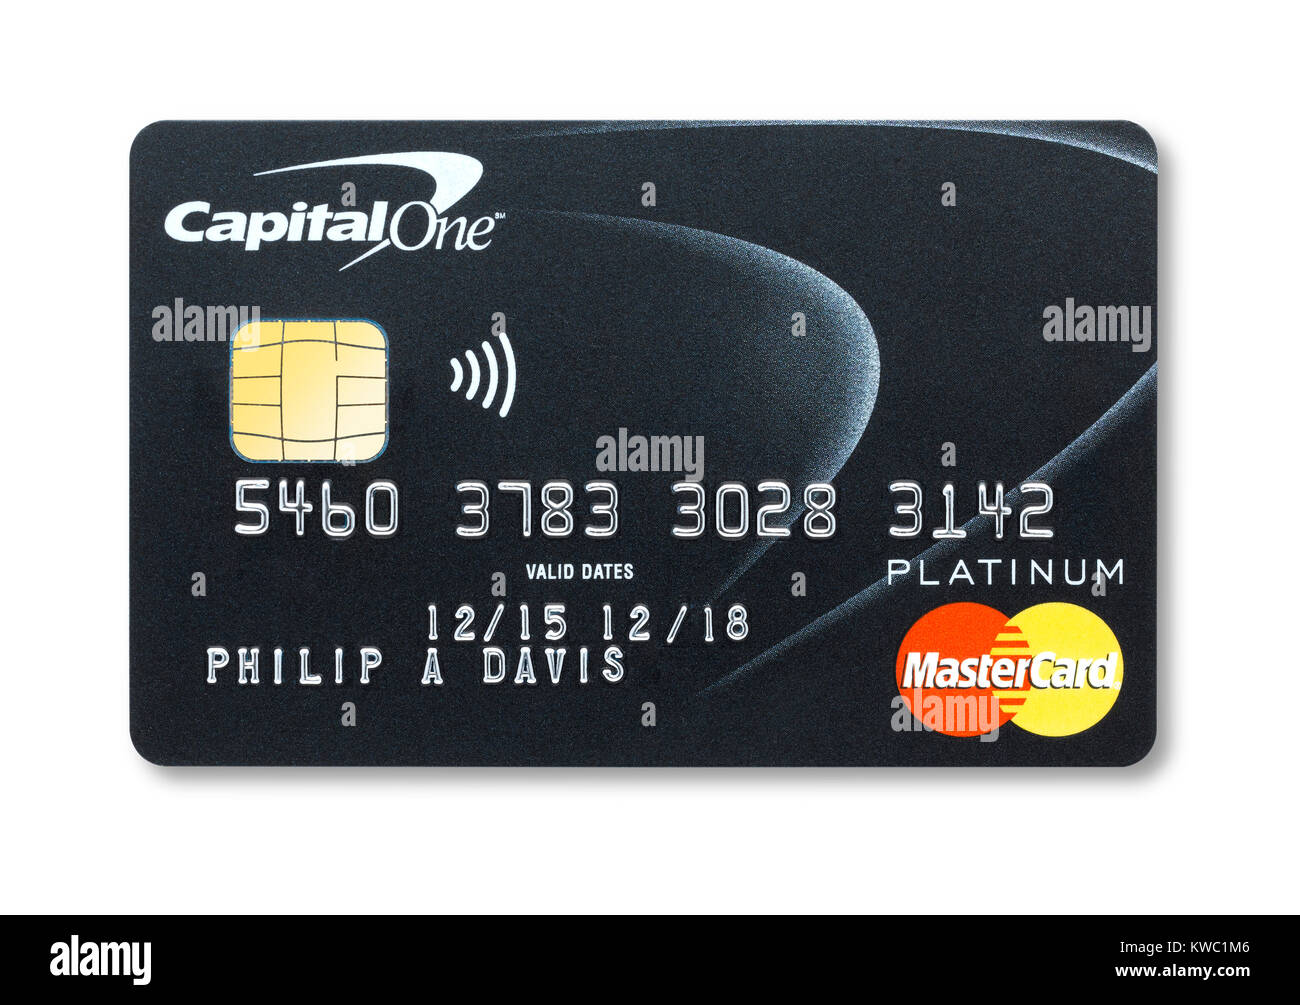 Simple cut out of a Capital One credit card with holding shadow - Stock Image